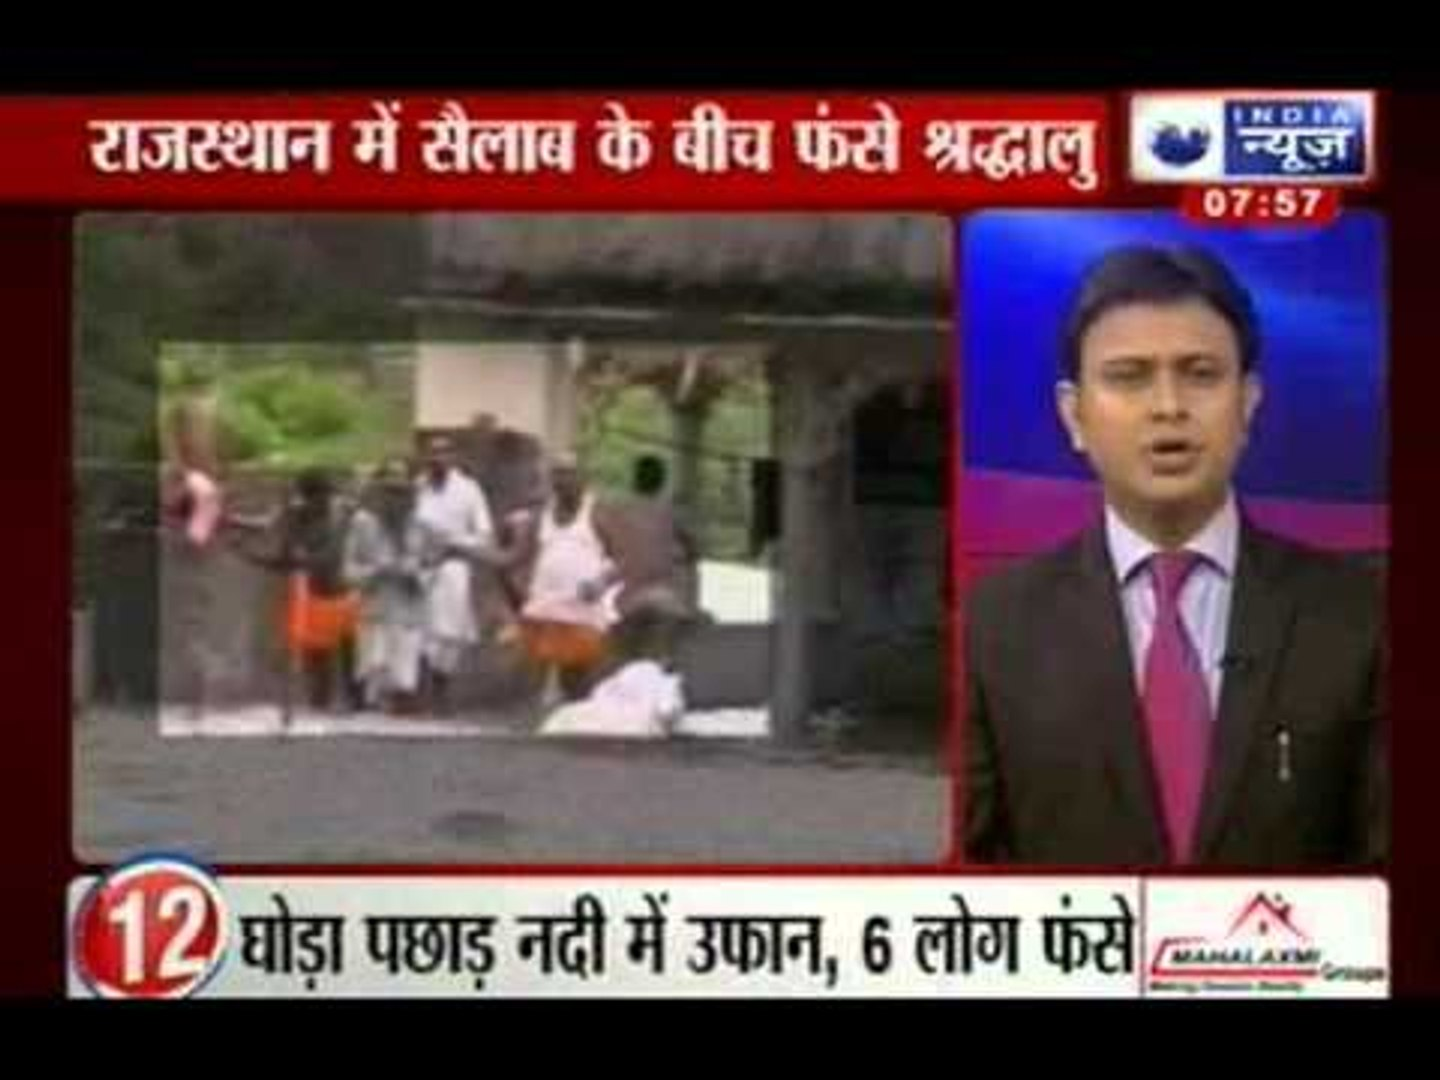 India News: News 25  27th July 2013 8 P.M.